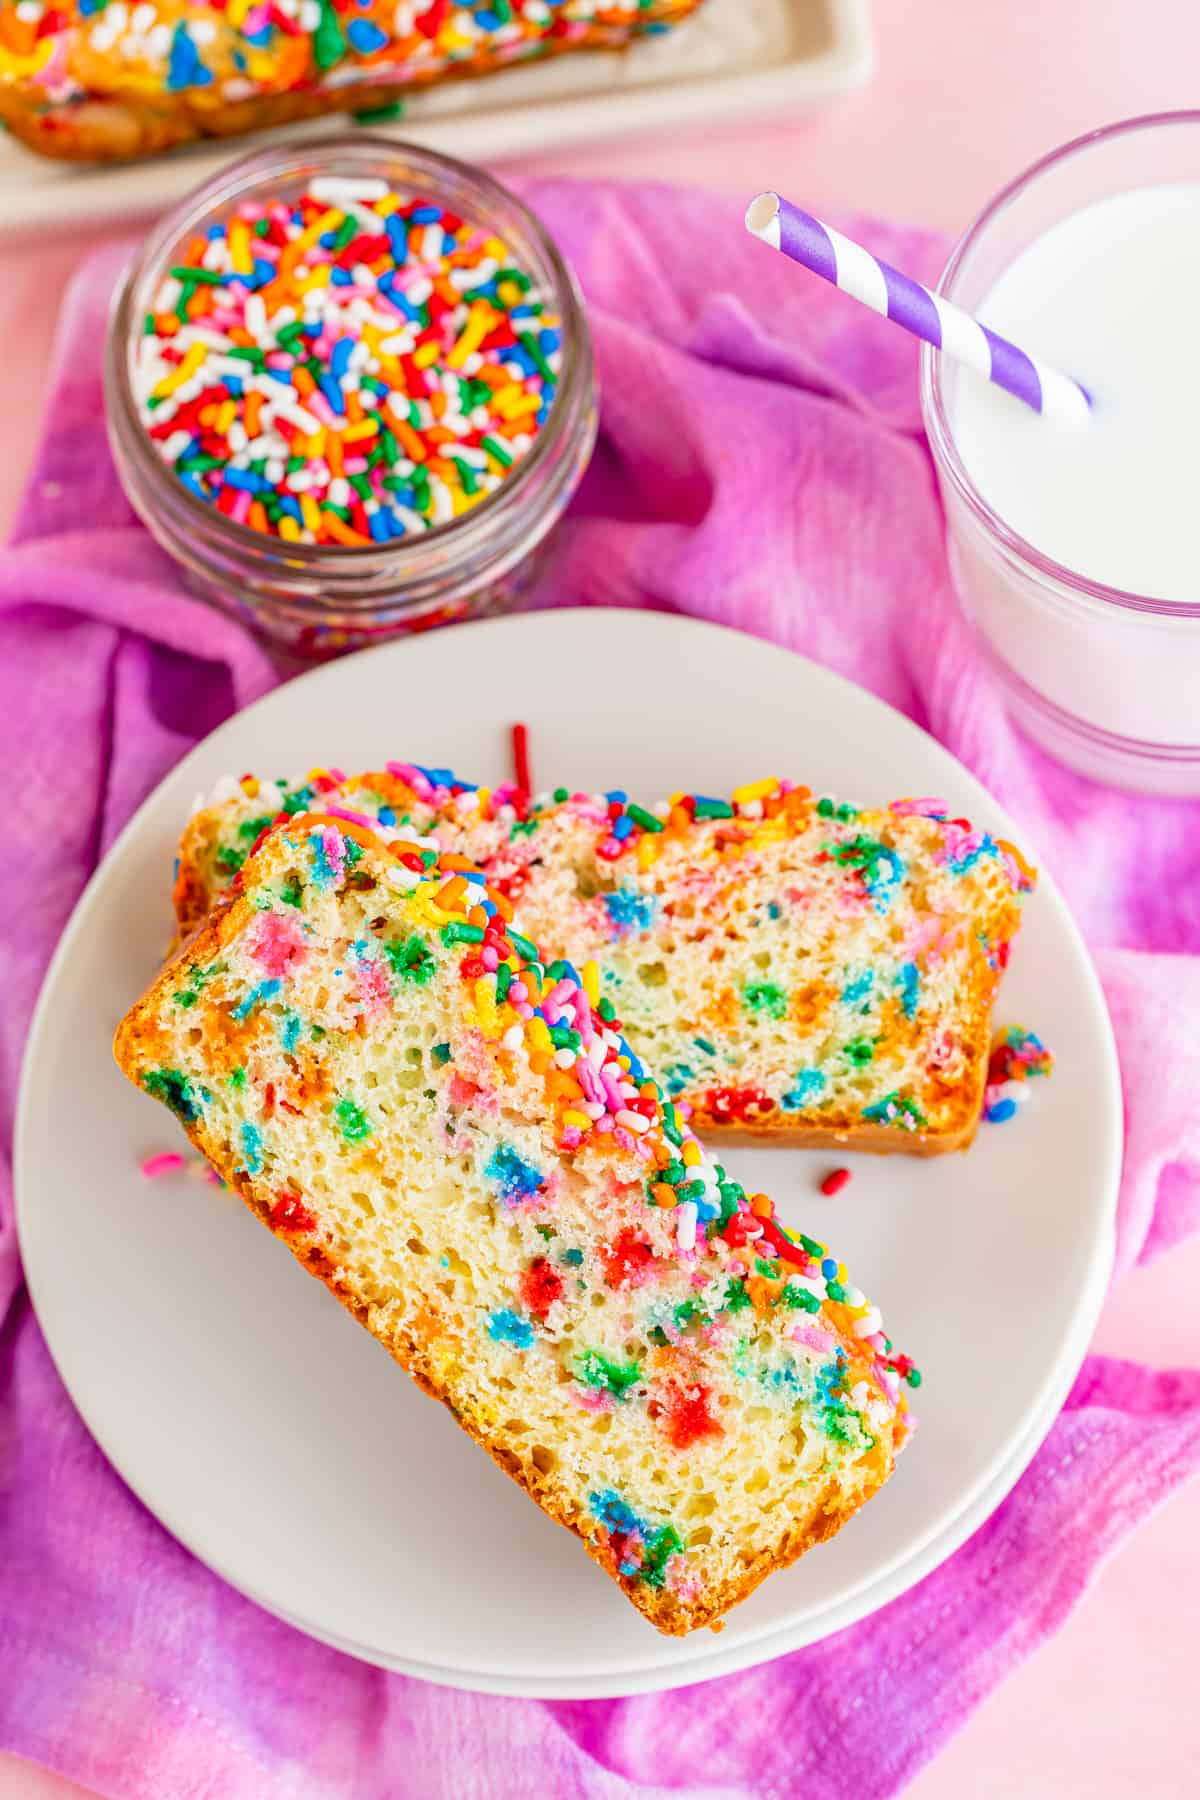 Two slices of bread on white plate with sprinkles and milk by plate